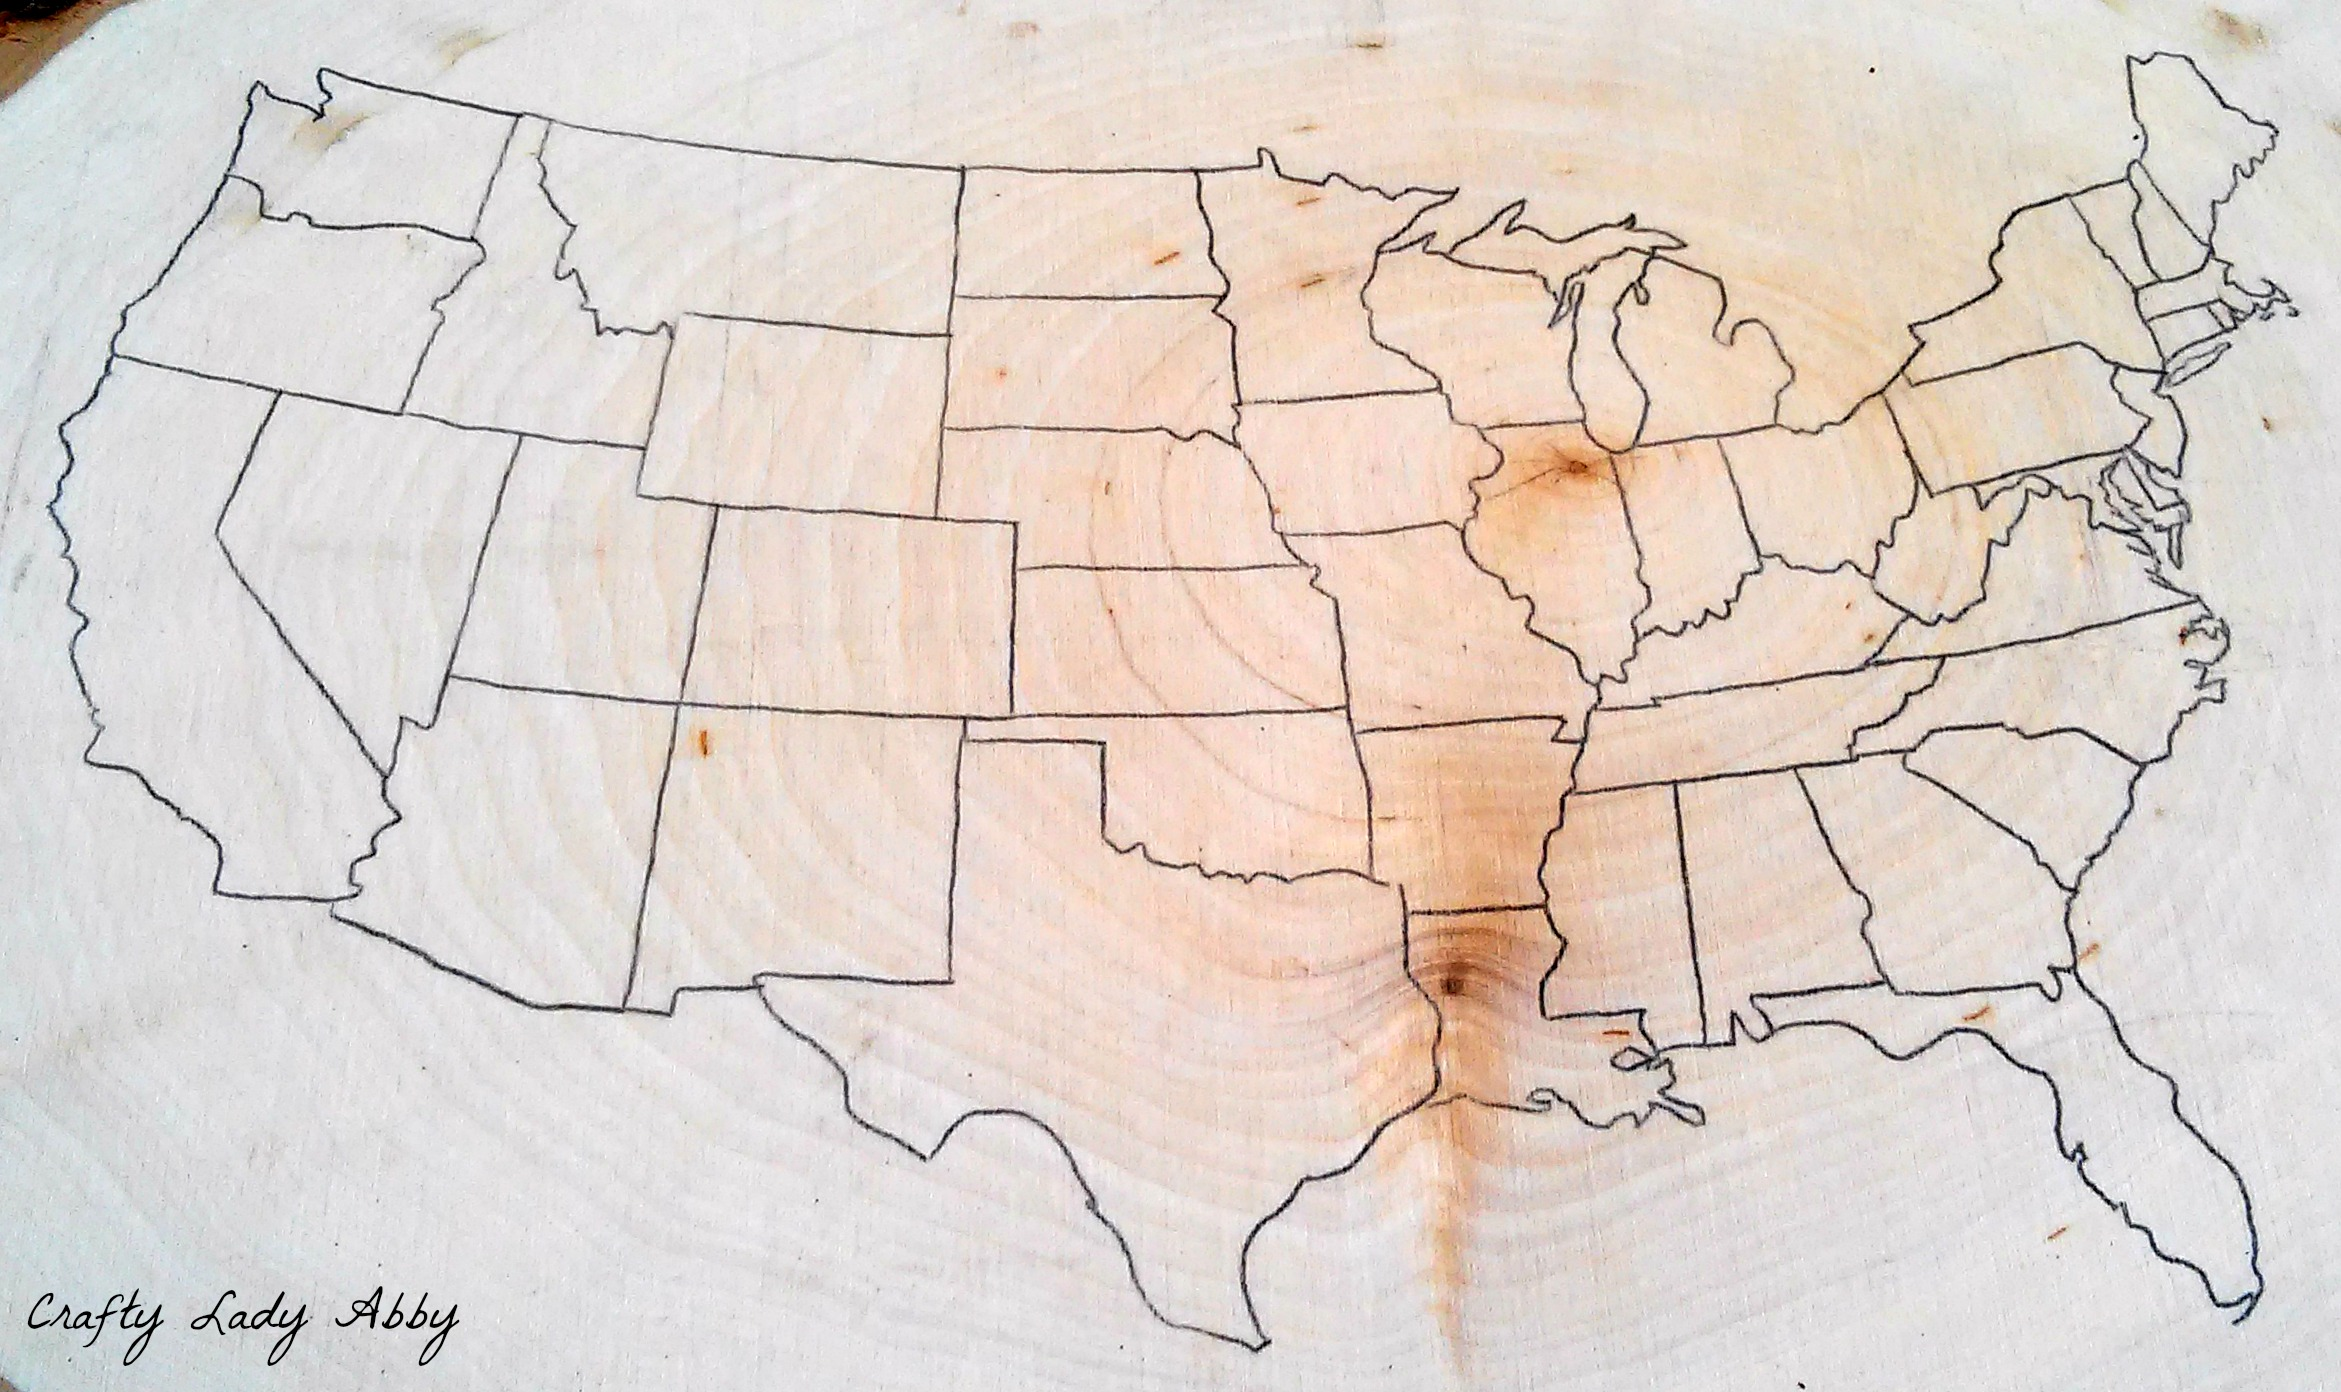 Father s Day Wood Burned USA Road Trip Map   walnuthollowcrafts 06 08 2015 FATHERS DAY WOOD BURNED USA ROAD TRIP MAP 1